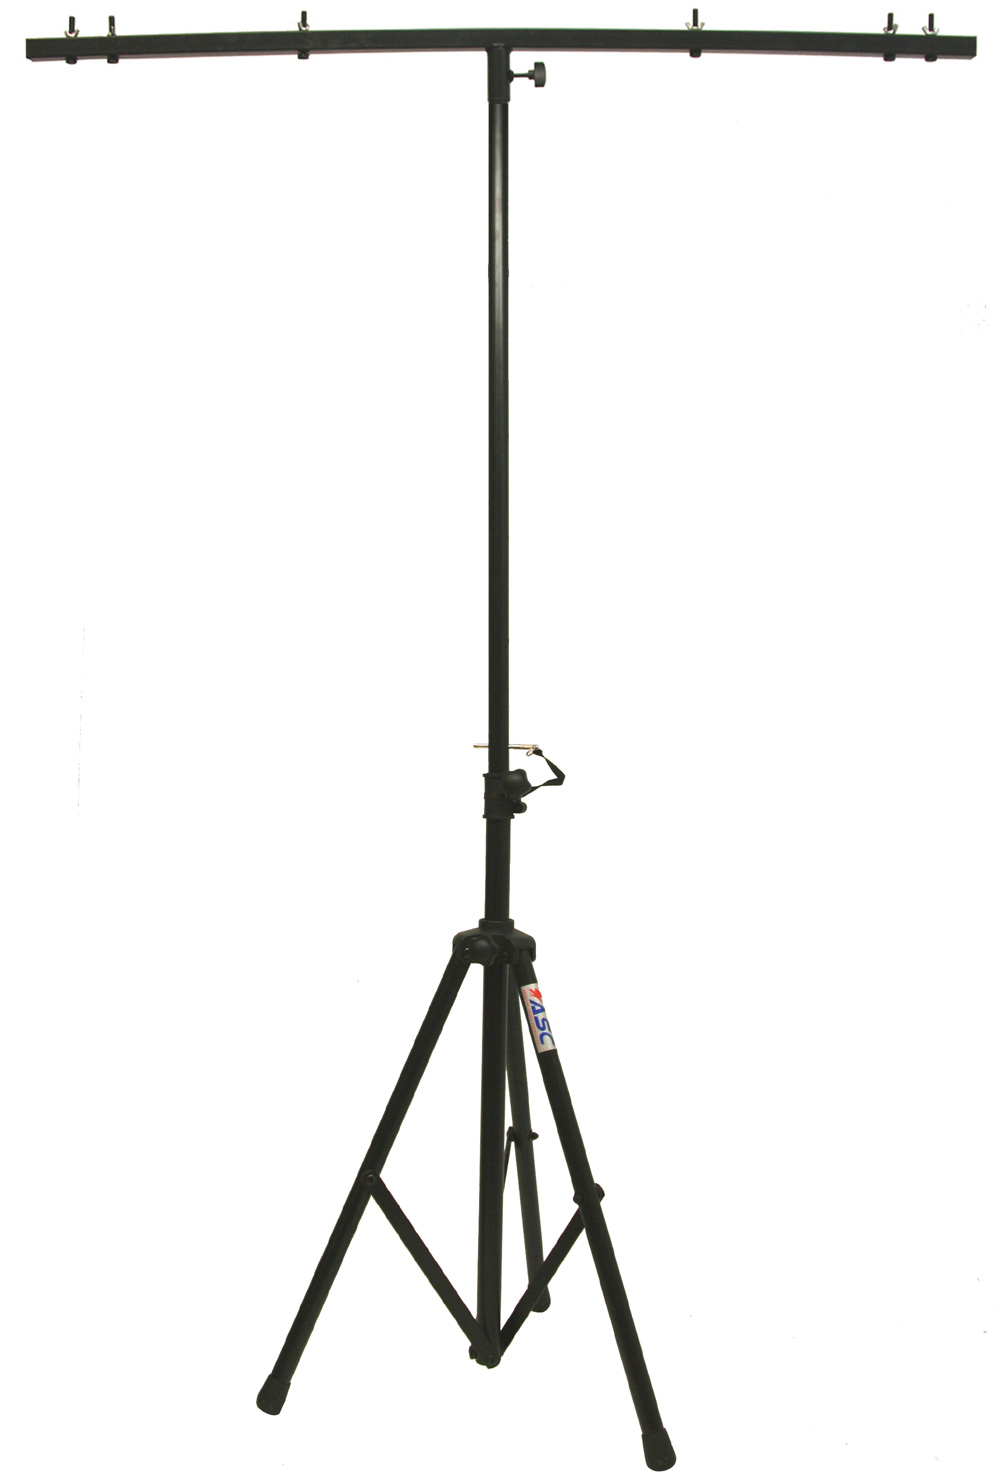 pro audio dj adjustable tripod stand with top t bar for par cans  wash or universal lighting